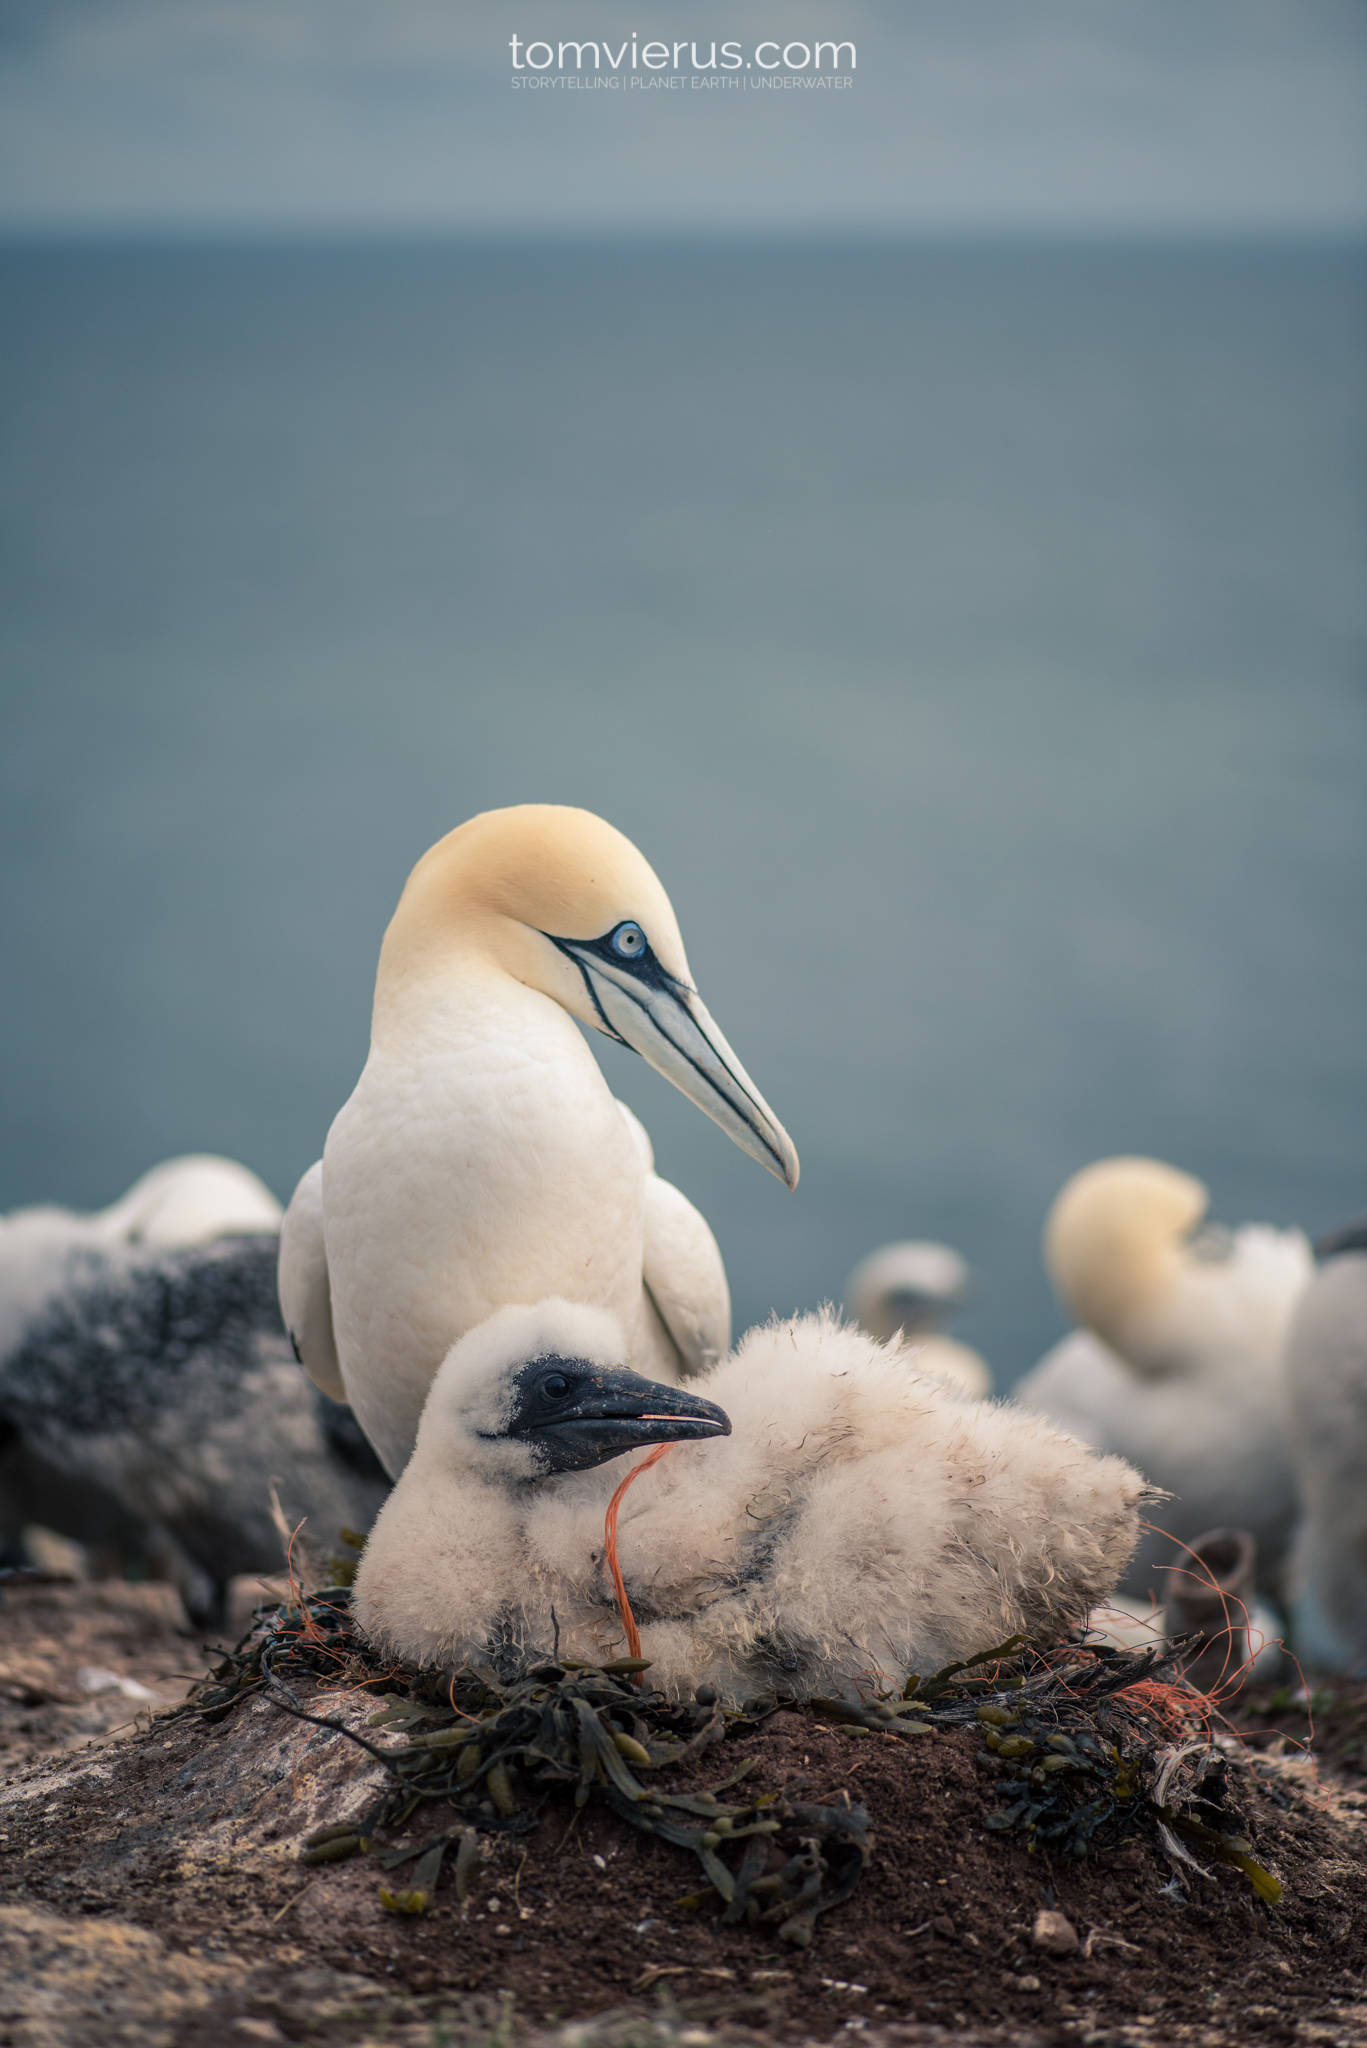 Gannet (Morus) Helgoland, Nature photography, birds, germany